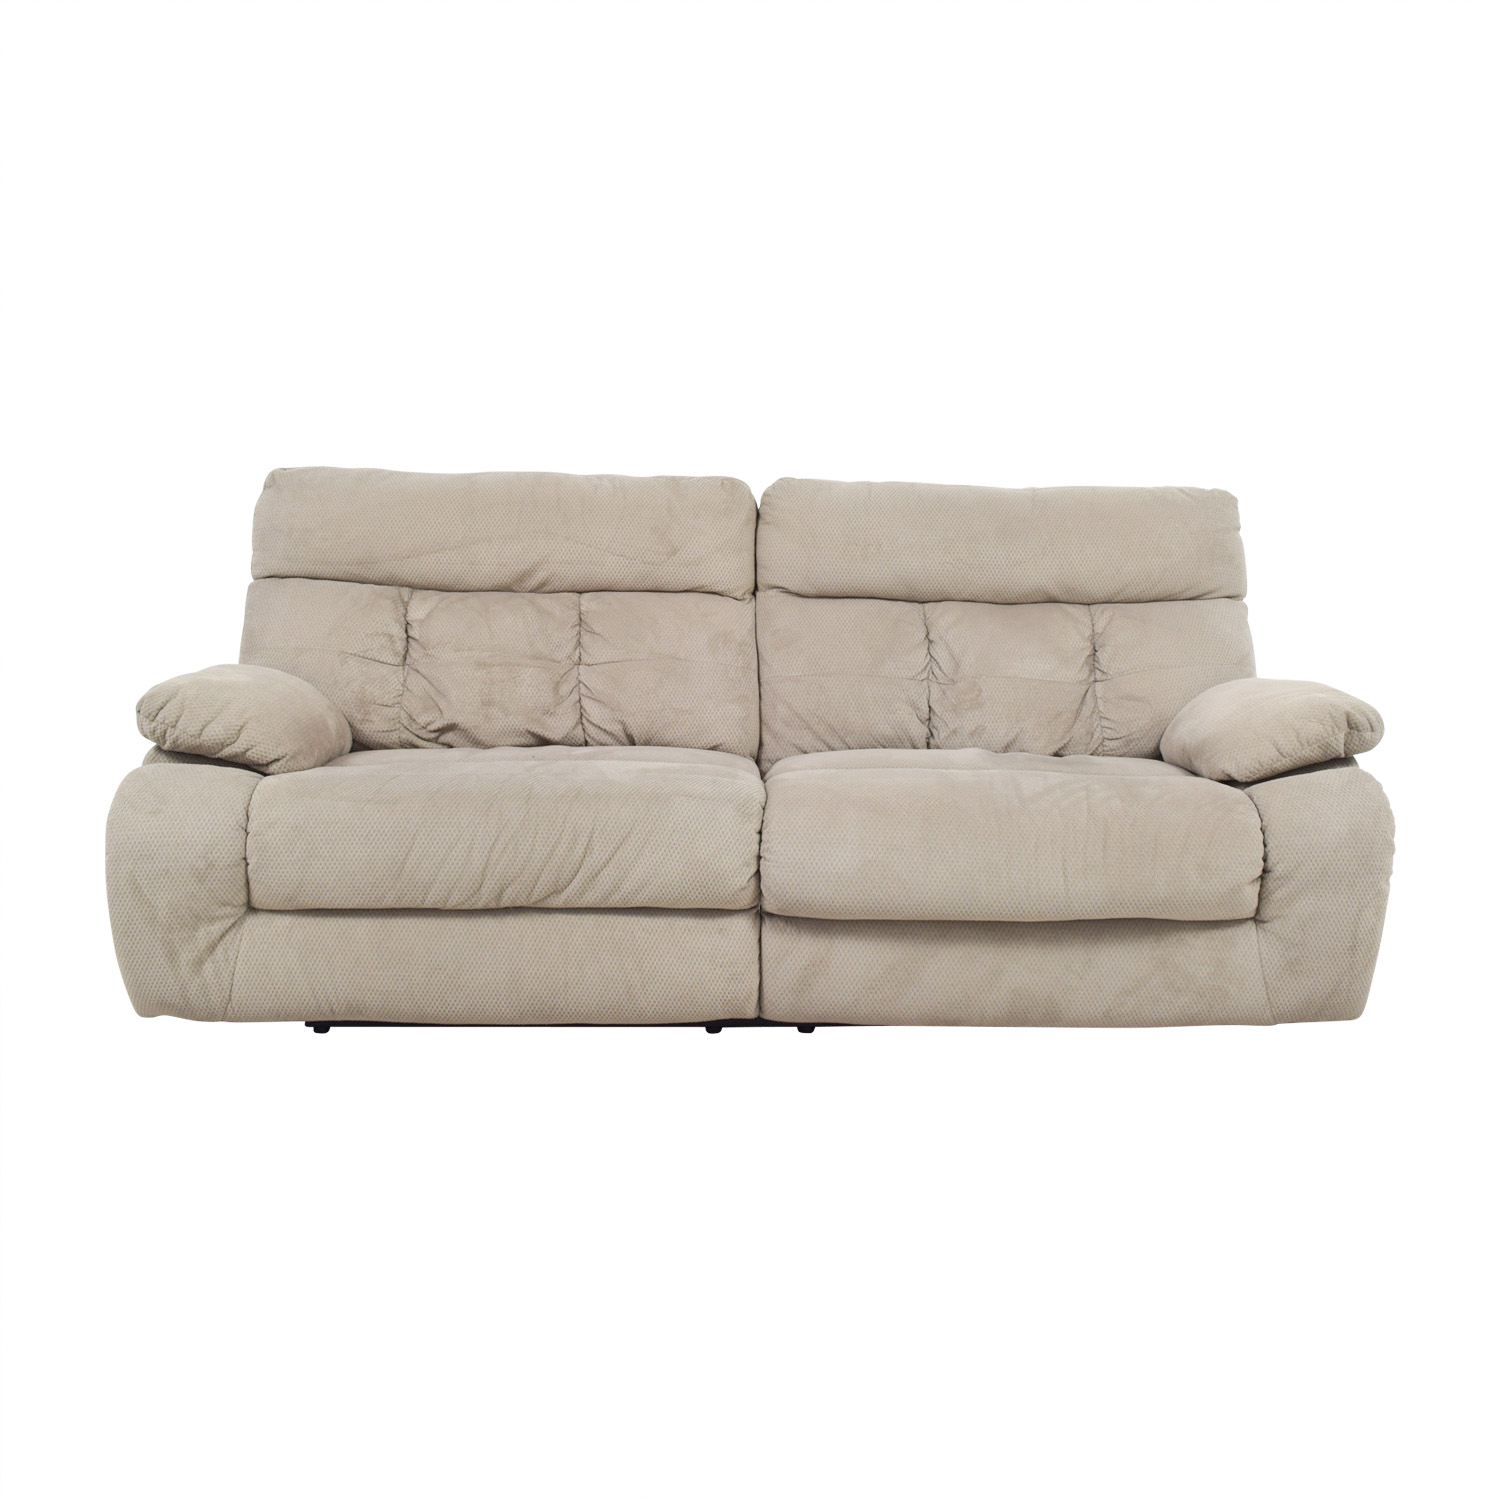 75 Off Ashley Furniture Ashley Furniture Beige Reclining Sofa